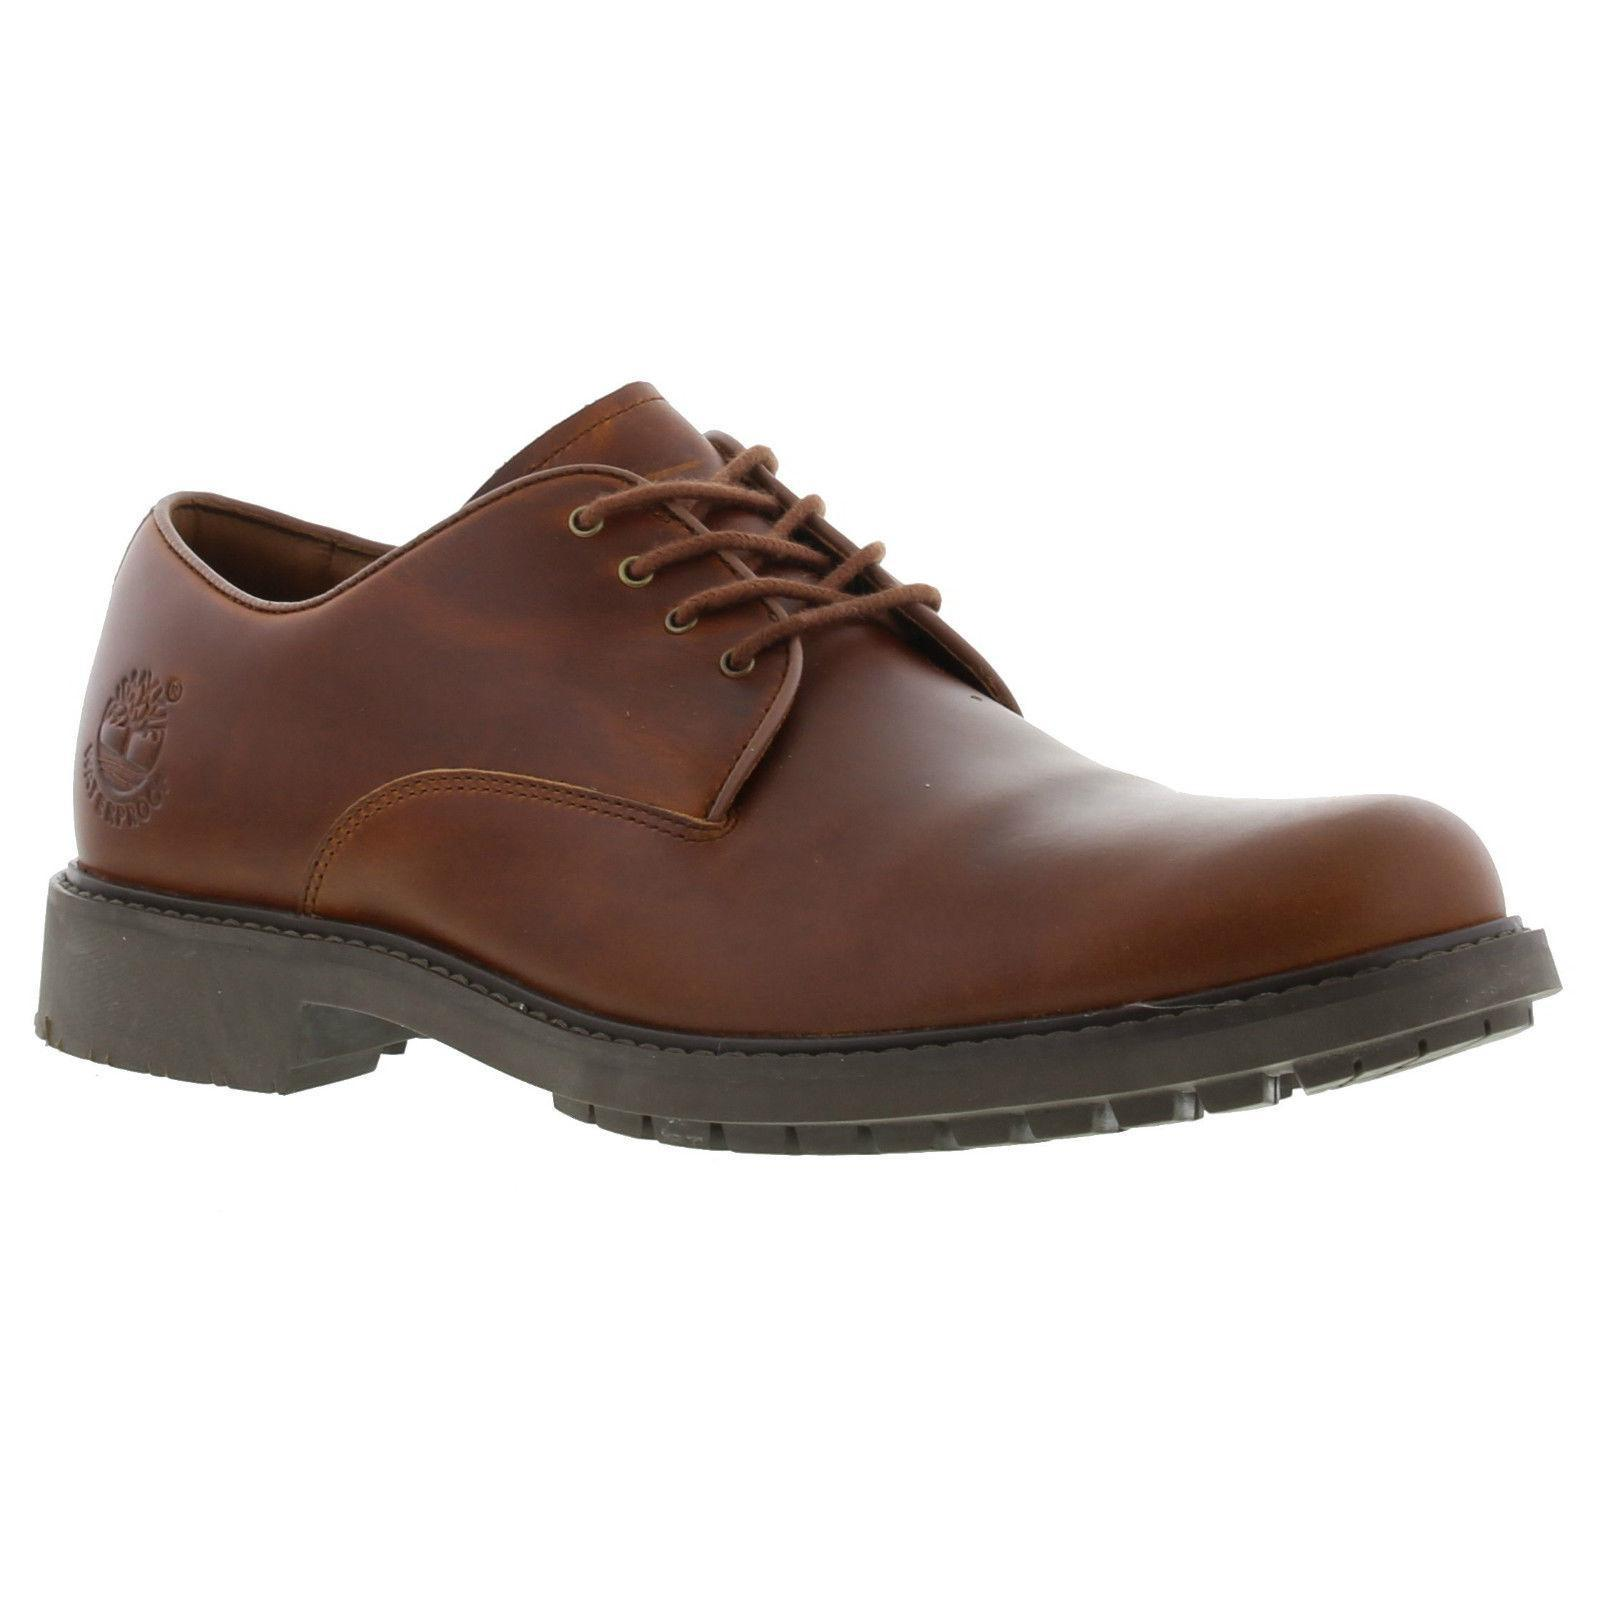 f1a654996dc24 Timberland Earthkeeper Stormbuck Waterproof Shoes - Tan in Brown for ...